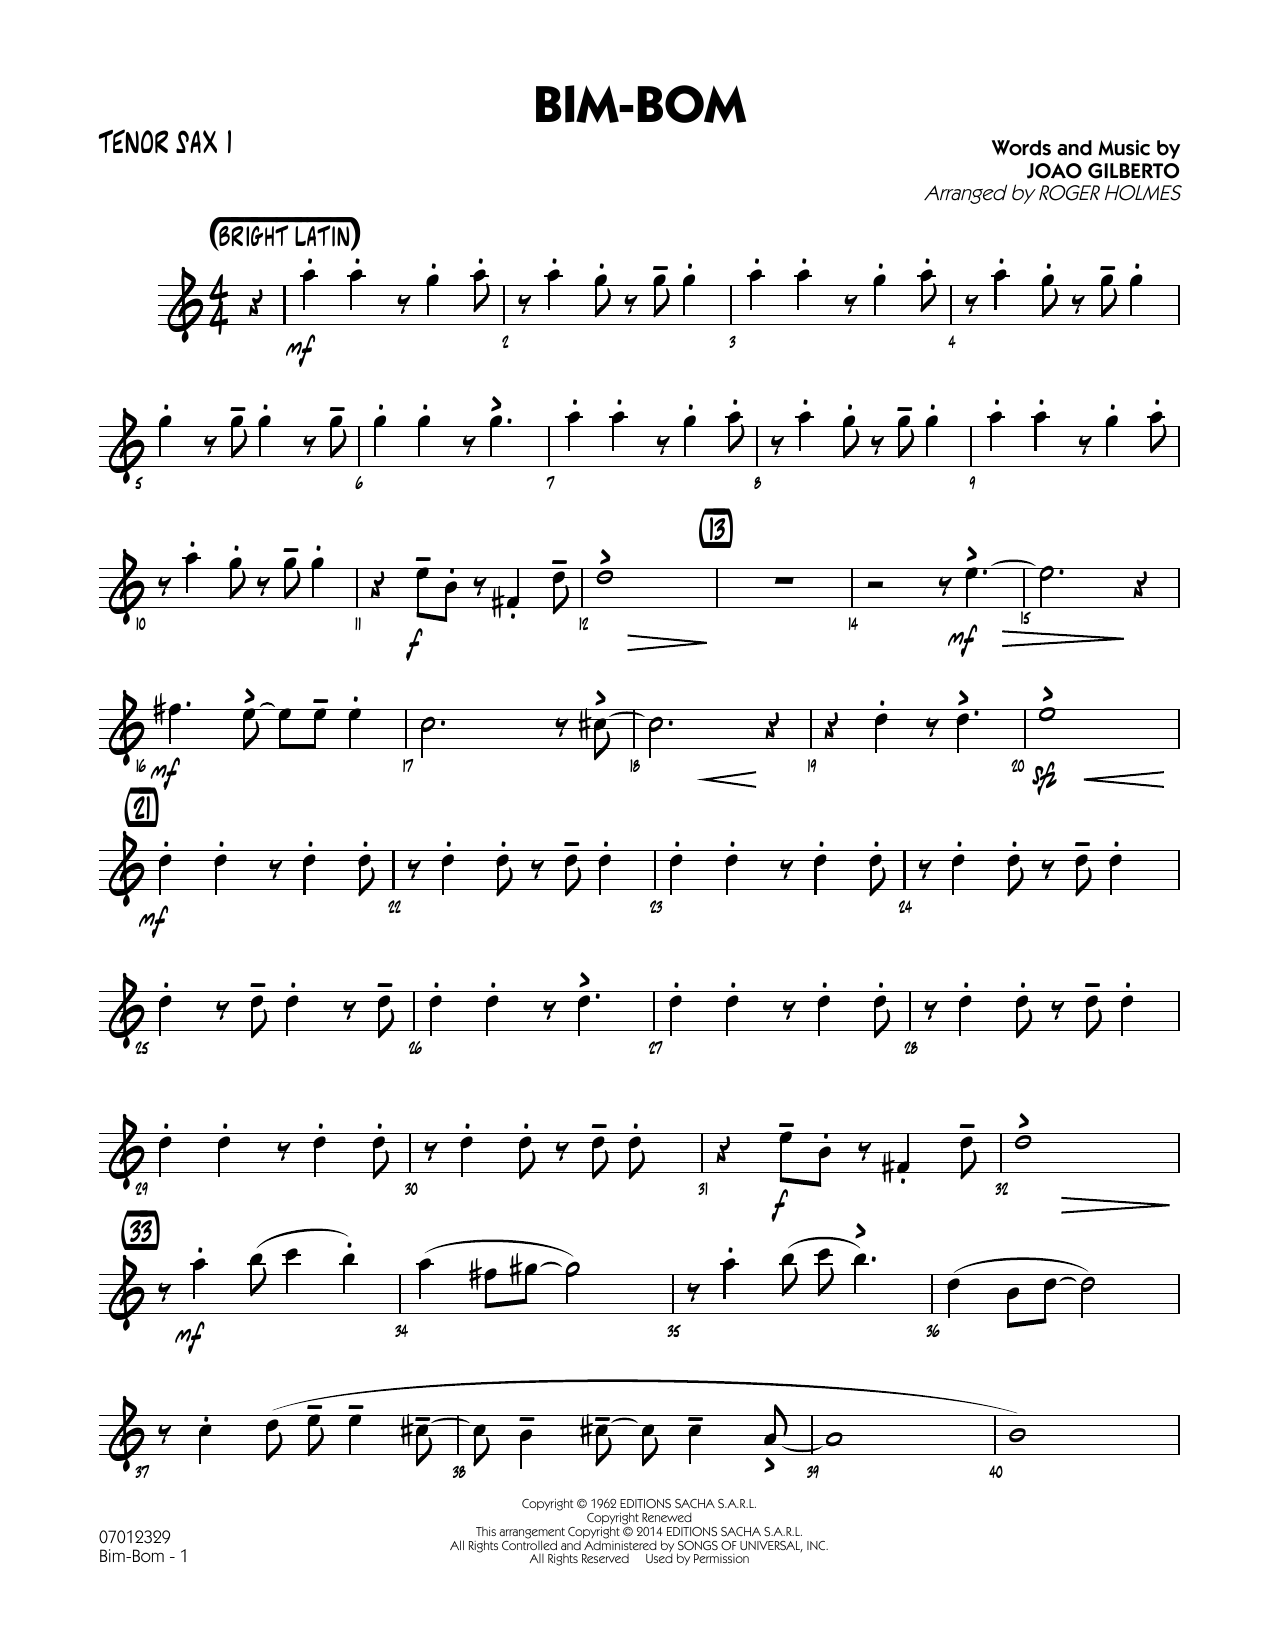 Roger Holmes Bim-Bom - Tenor Sax 1 sheet music notes and chords. Download Printable PDF.